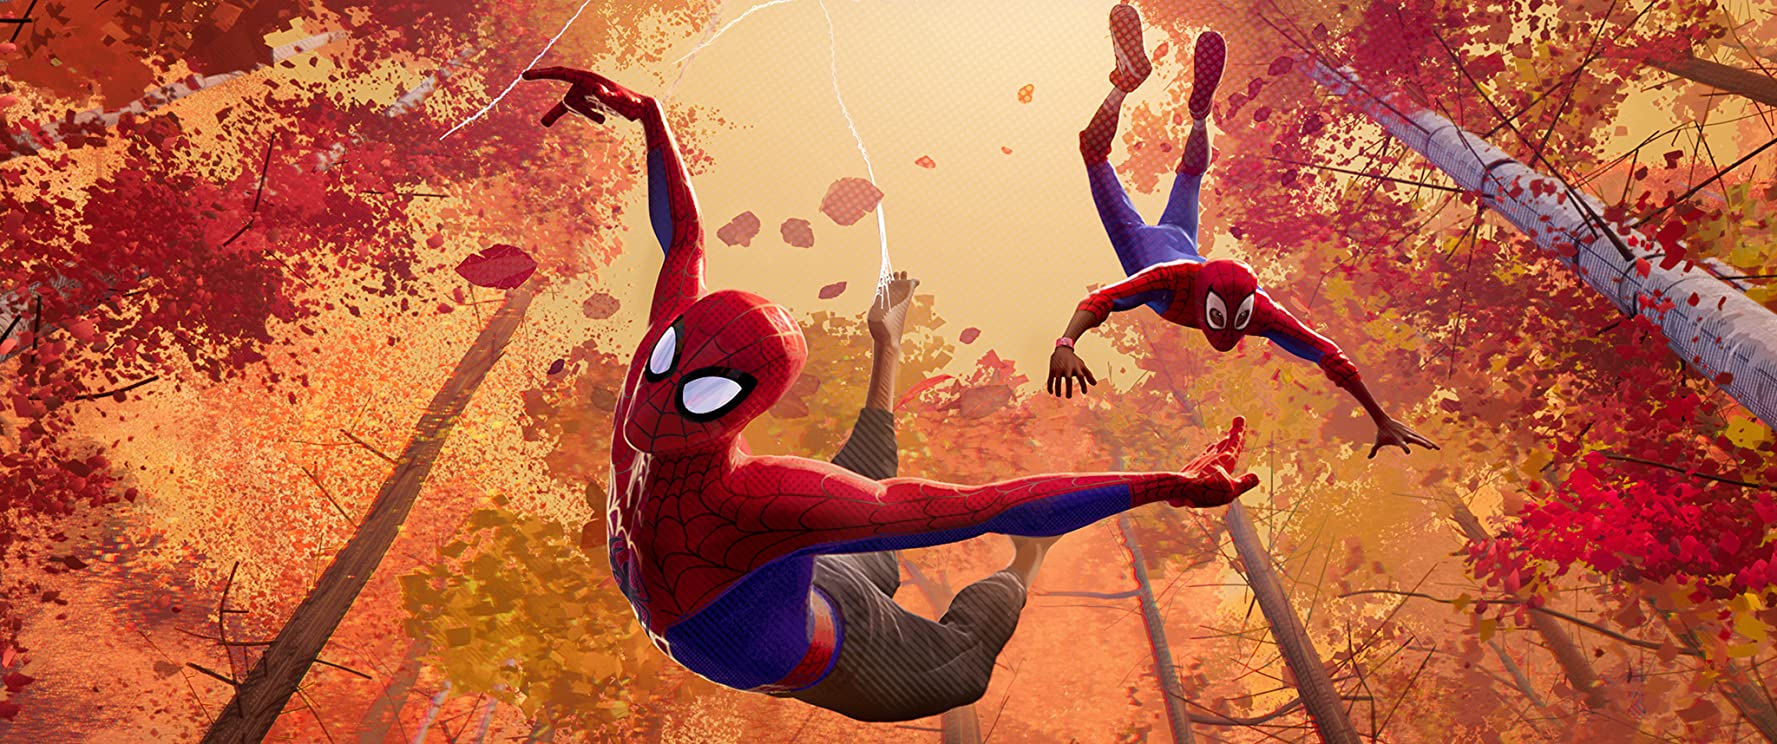 Jake Johnson and Shameik Moore in Spider-Man: Into the Spider-Verse (2018)